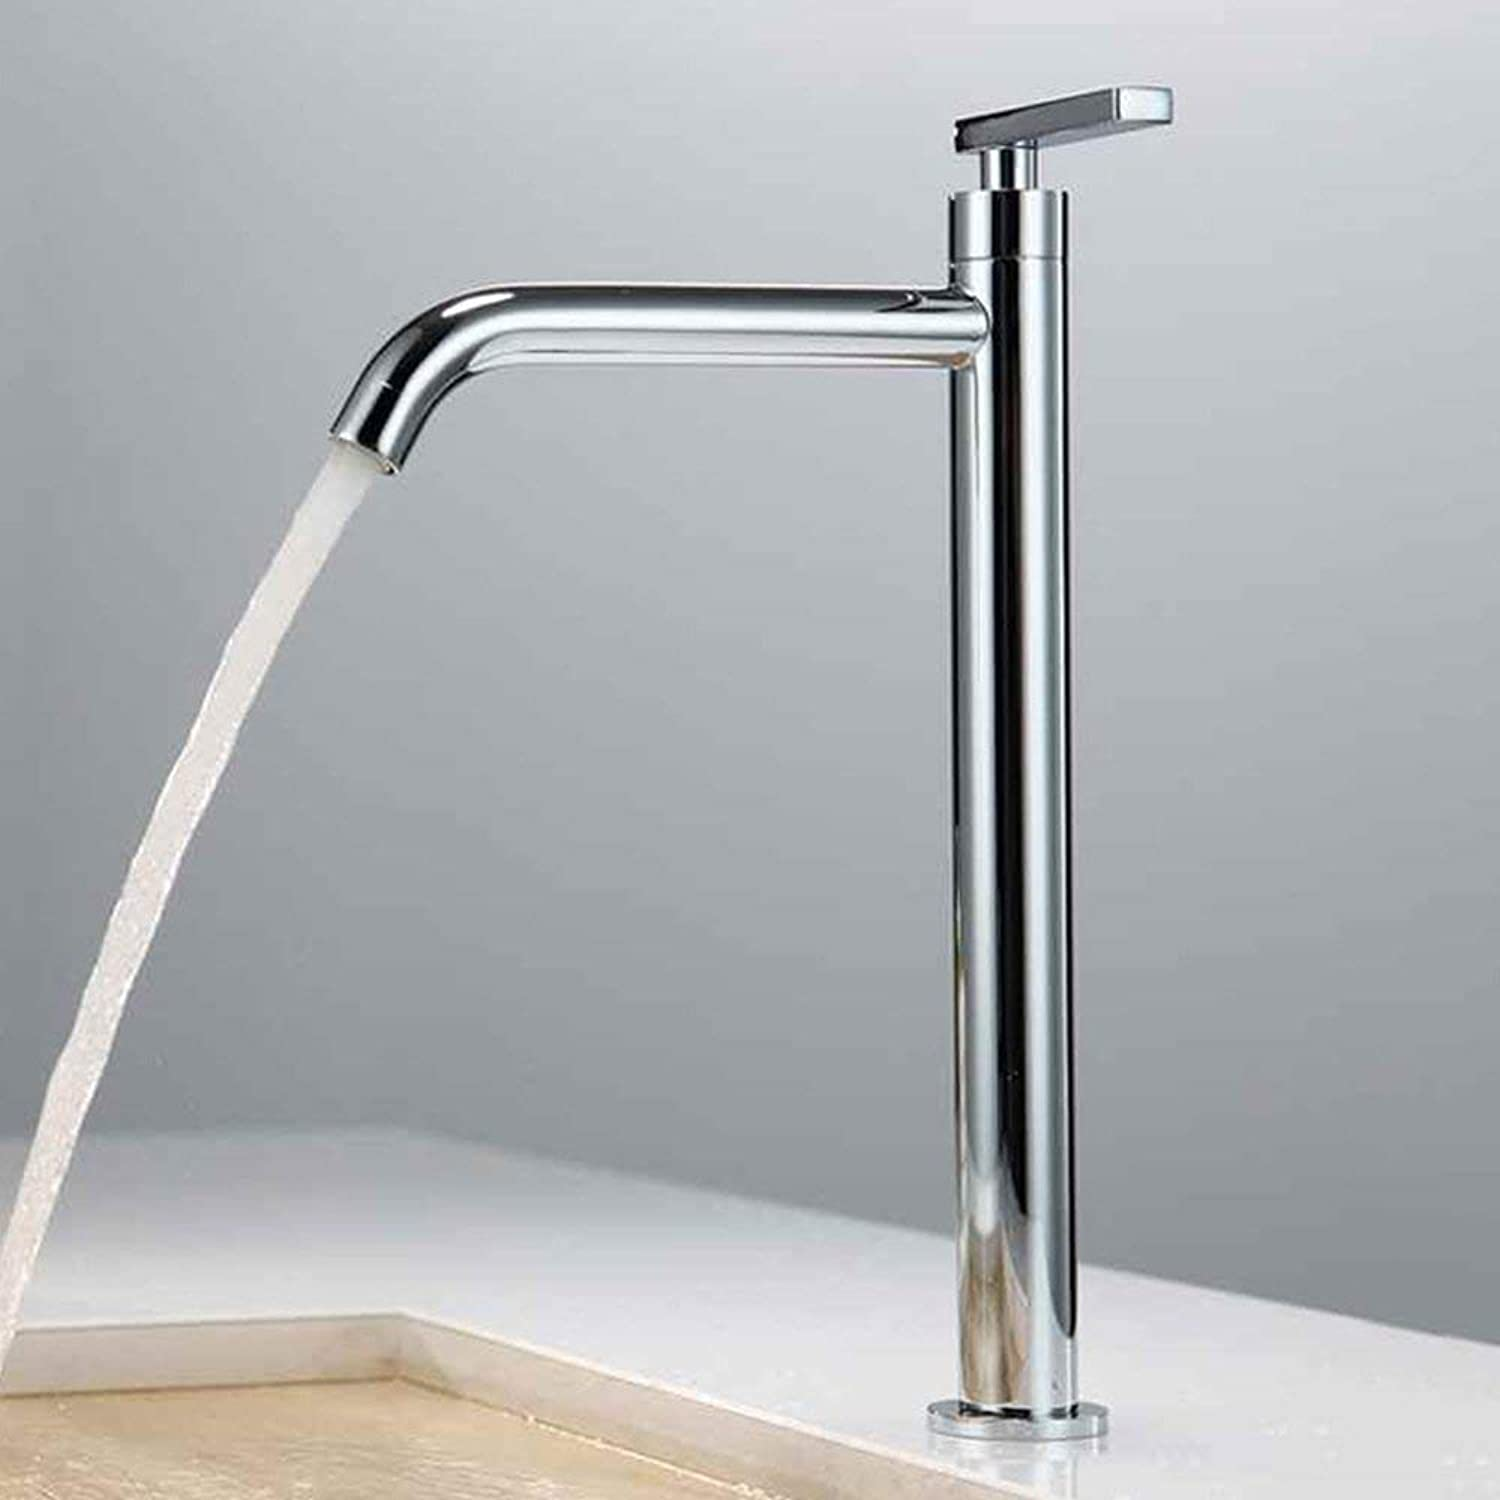 Chrome Cold Water Bath Faucet Tall Washbasin Faucet Single Lever Mixer Tap Washbasin Faucet Bathroom Faucet f.Bathroom with Longer Spout 59A Brass